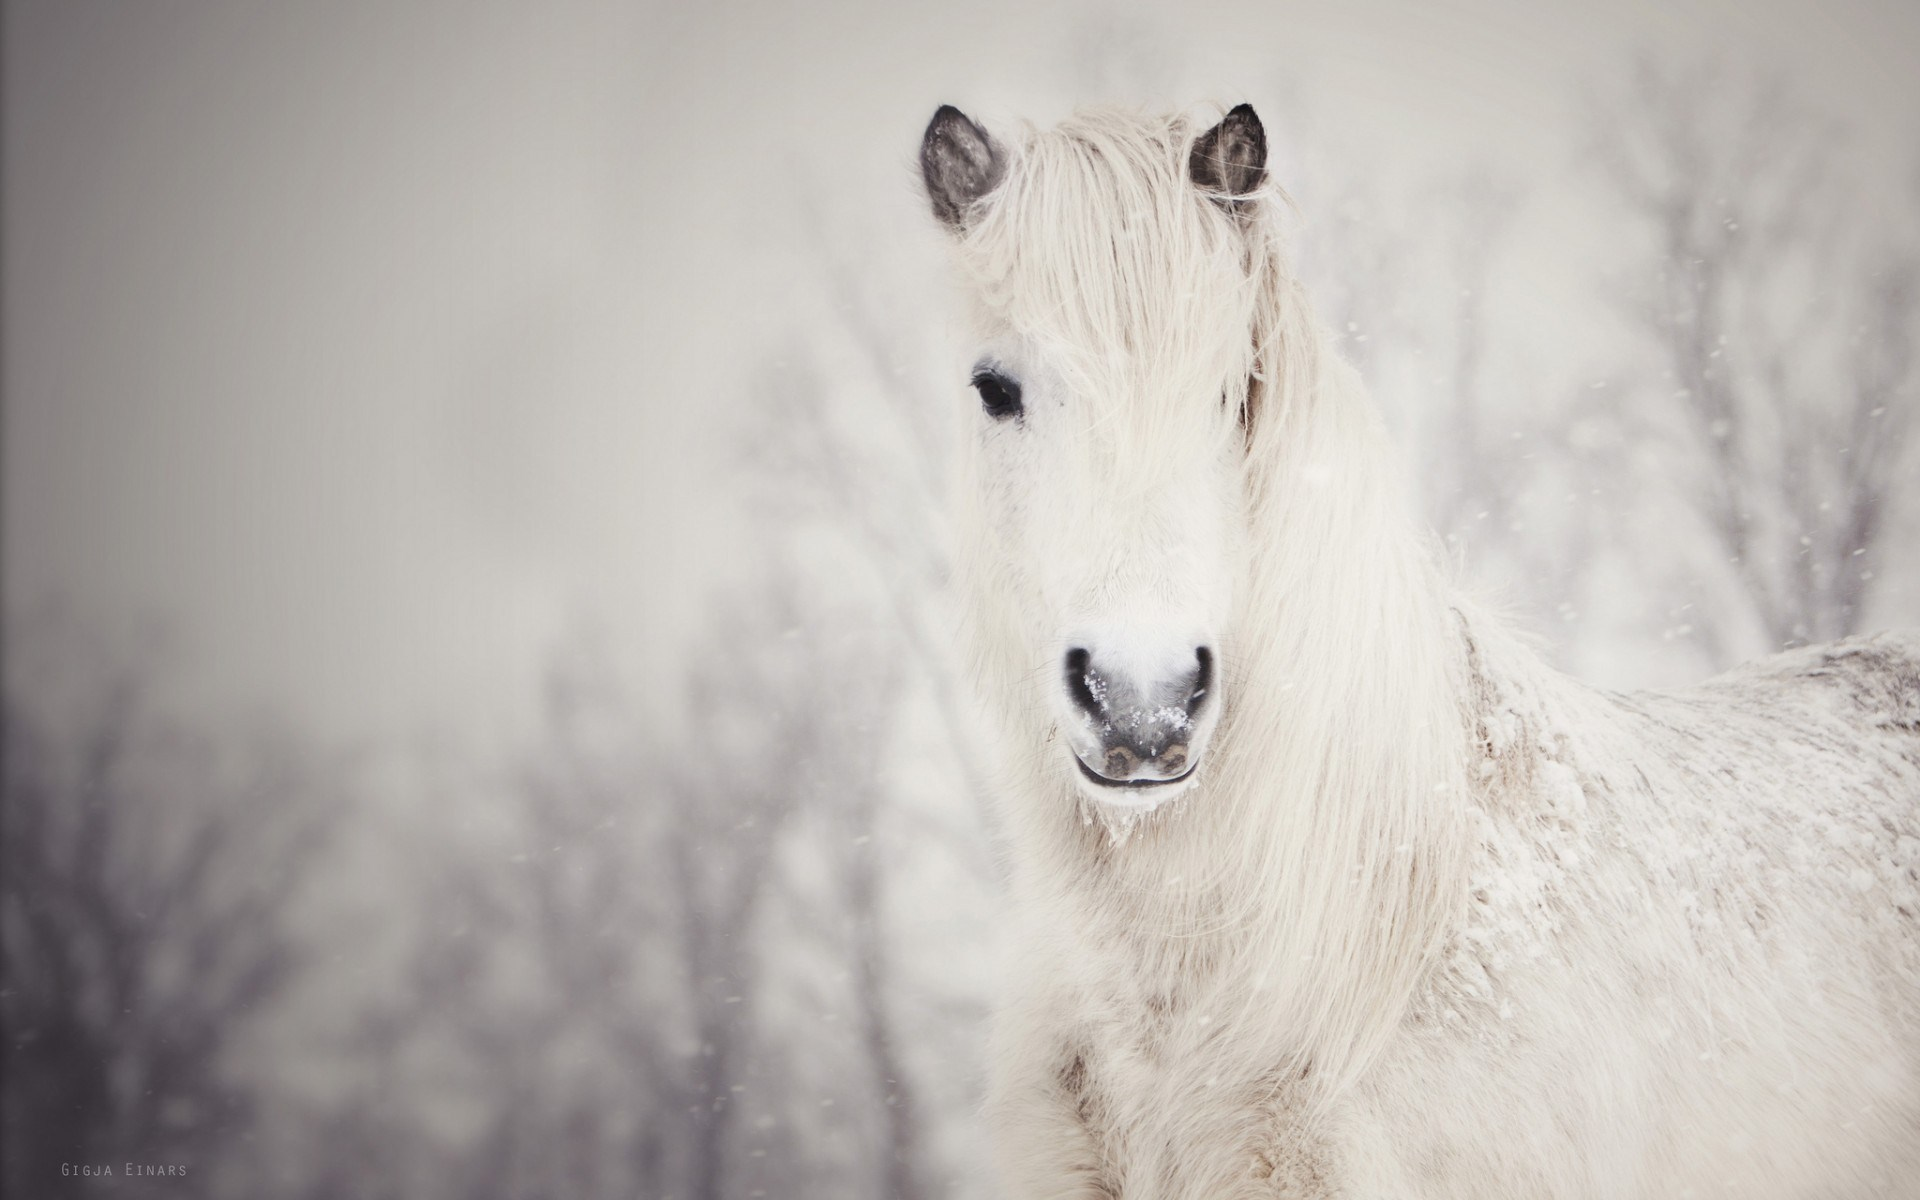 Winter Snow Horse Wallpaper 1920x1200 14599